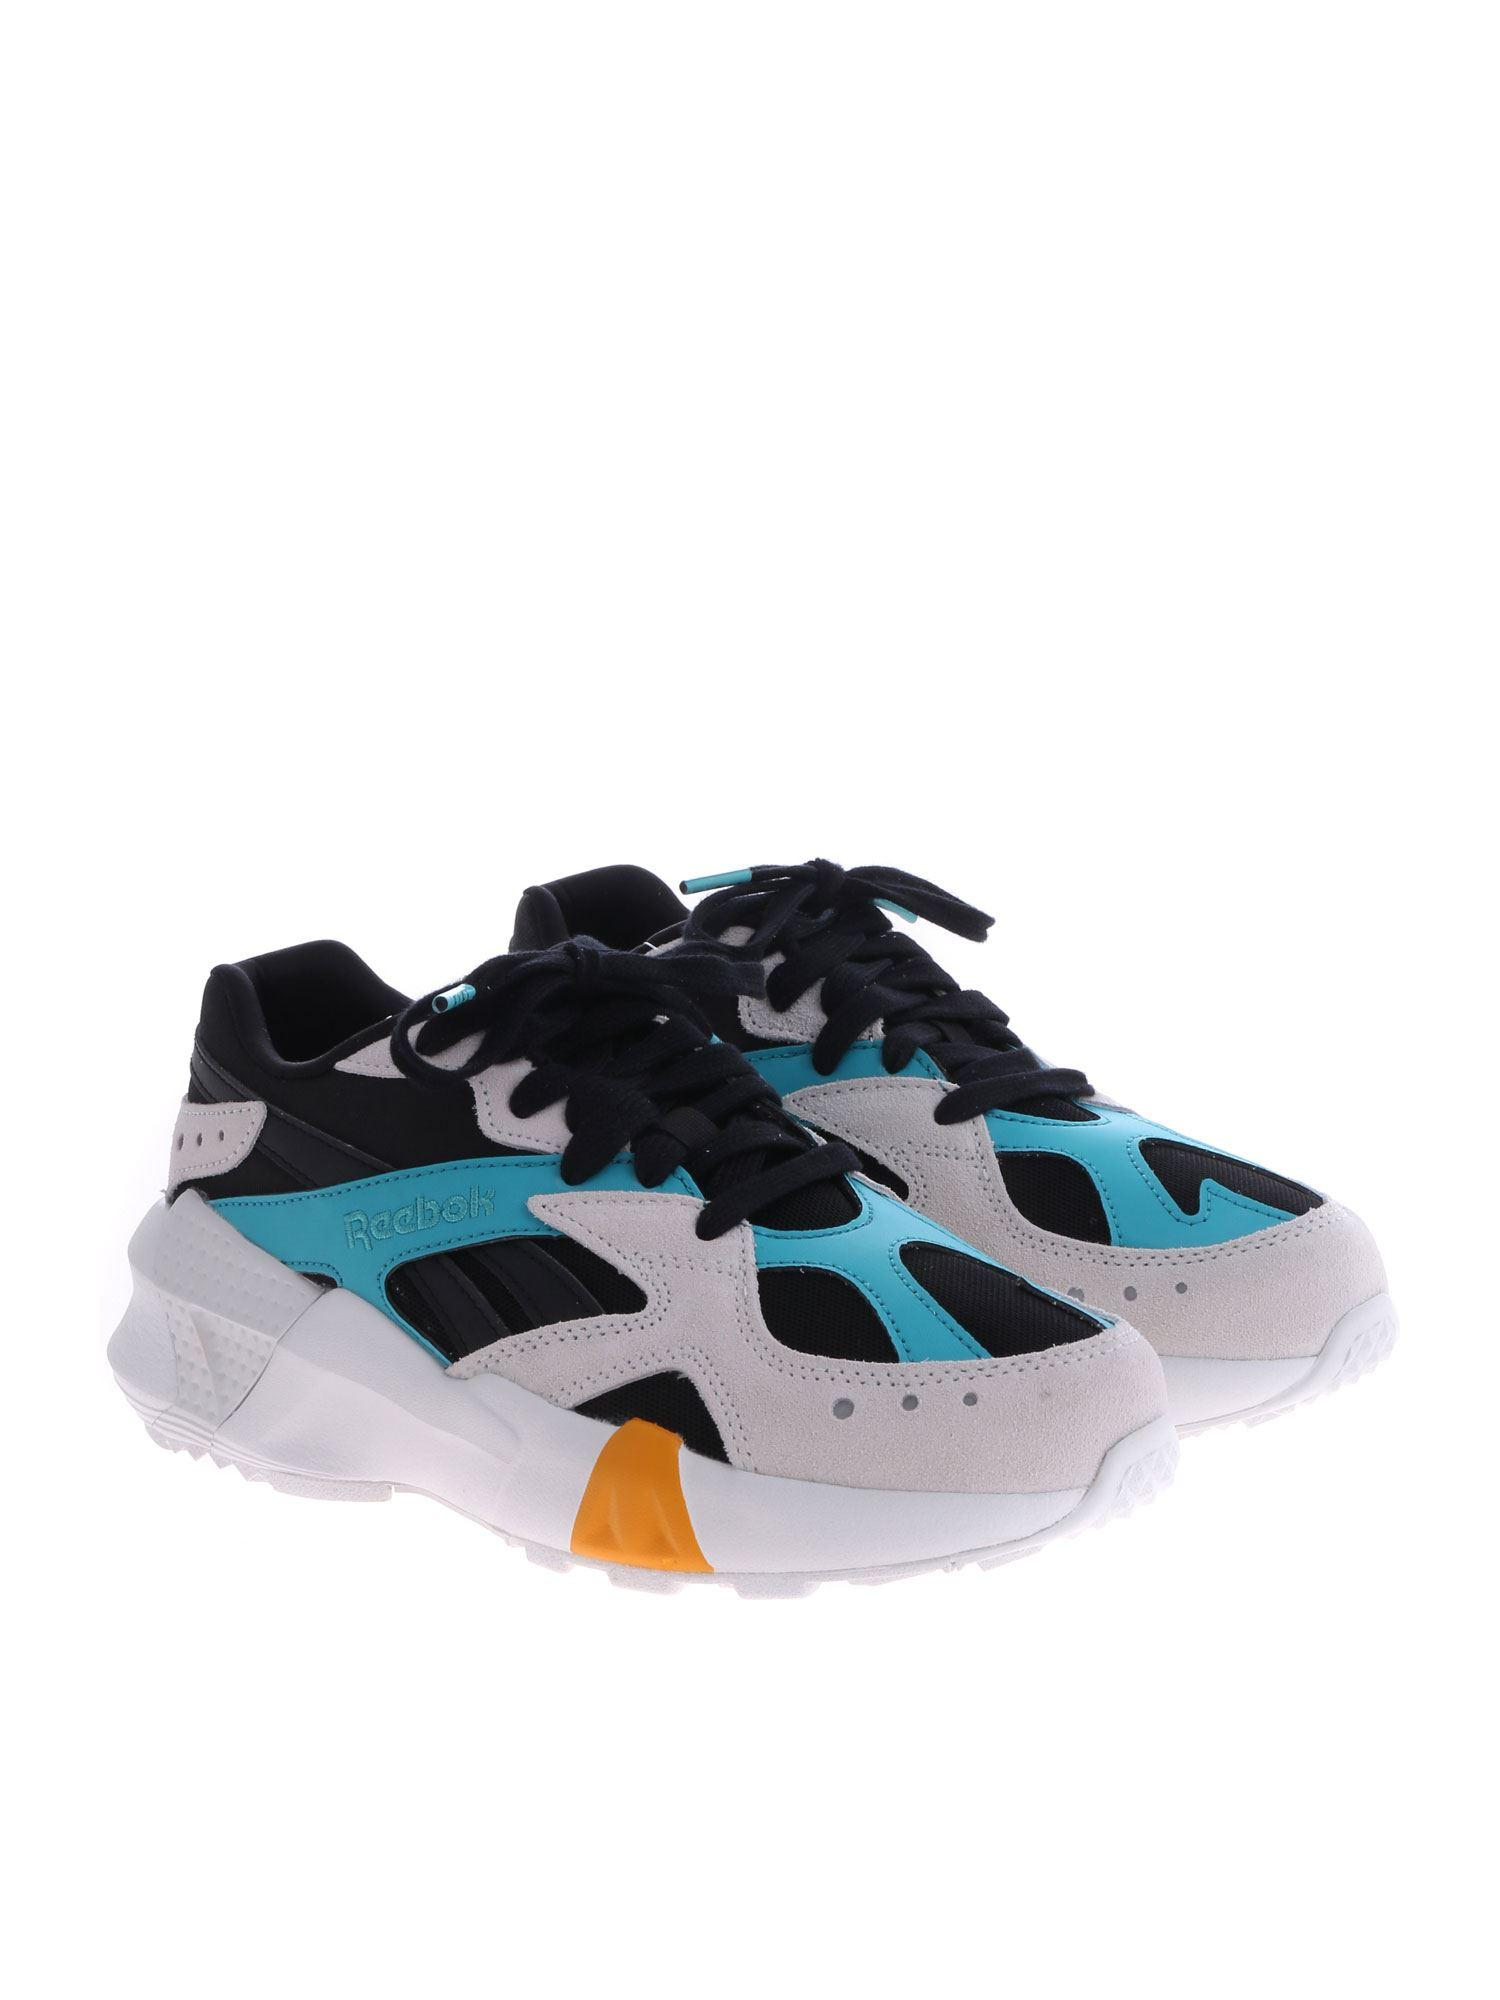 7350214f3d4 Reebok - Blue Black Aztrek Chunky Low-top Leather Sneakers - Lyst. View  fullscreen